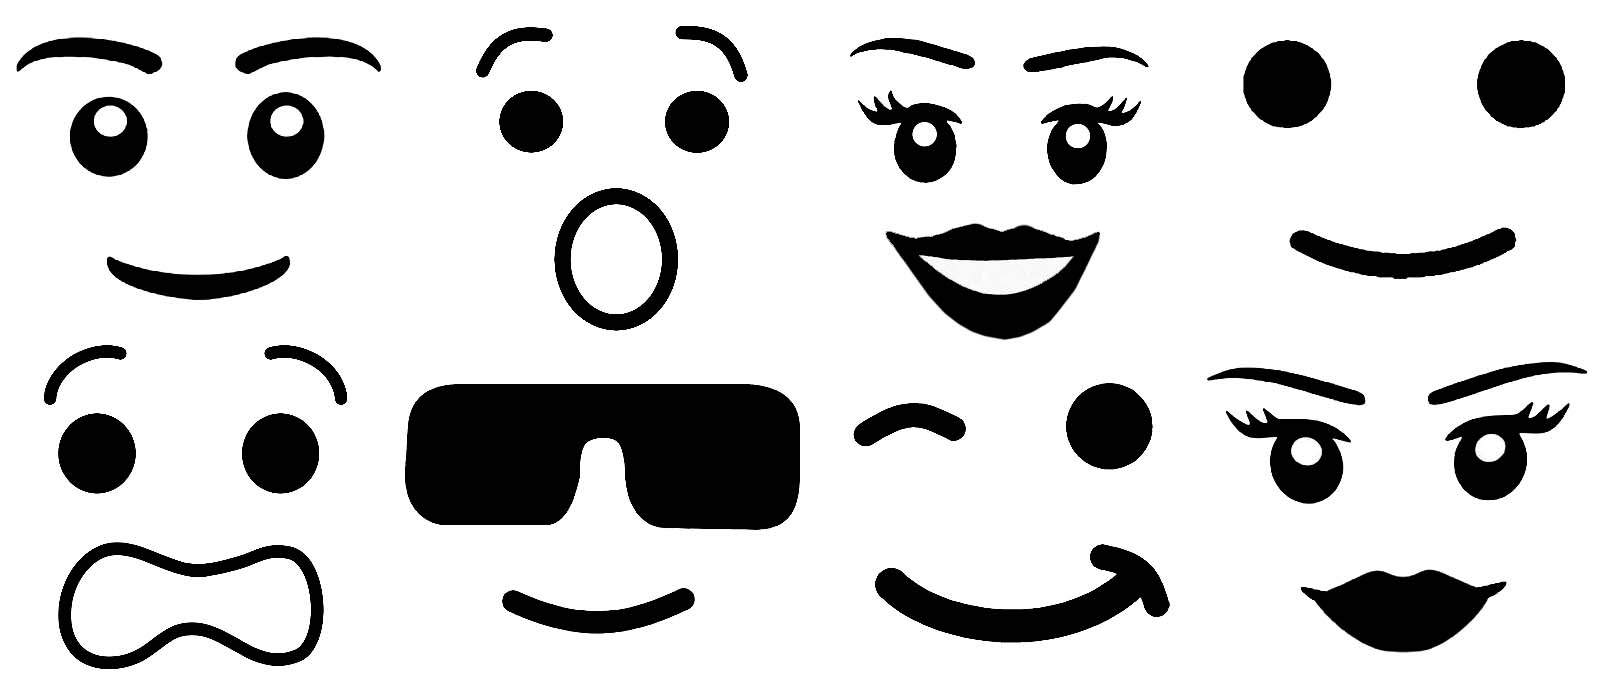 Lucrative image pertaining to printable lego faces